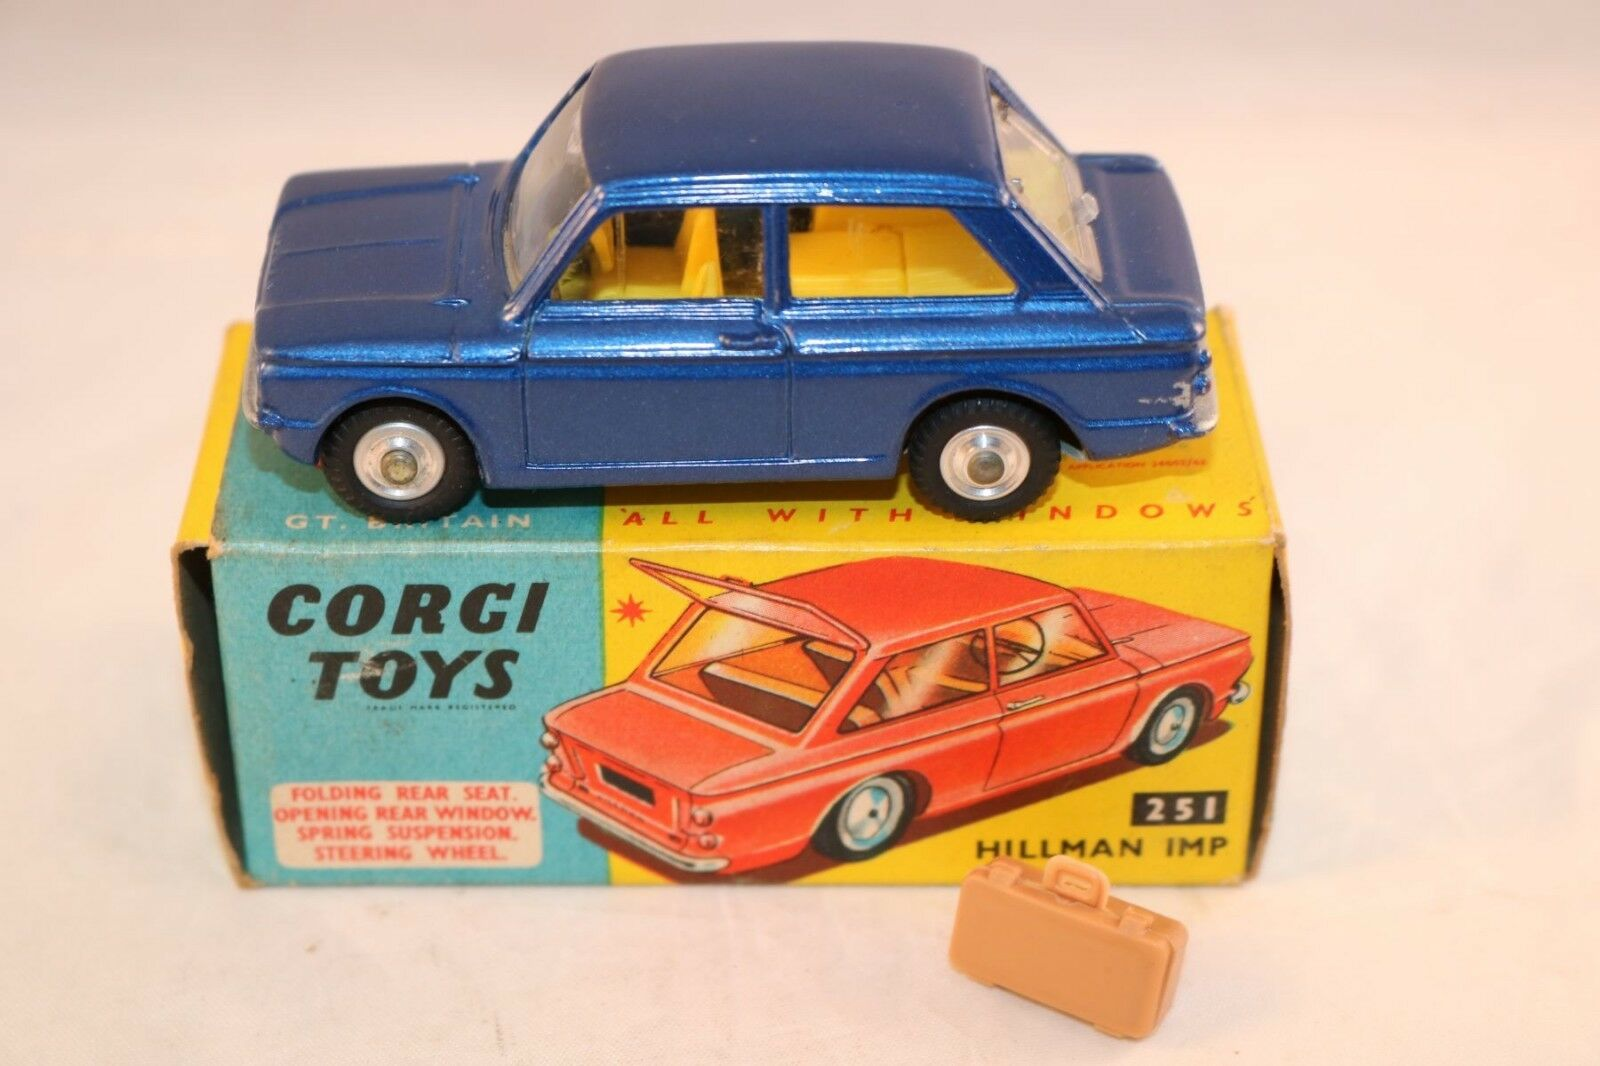 Corgi Toys 251 Hillman IMP perfect mint in box all original condition